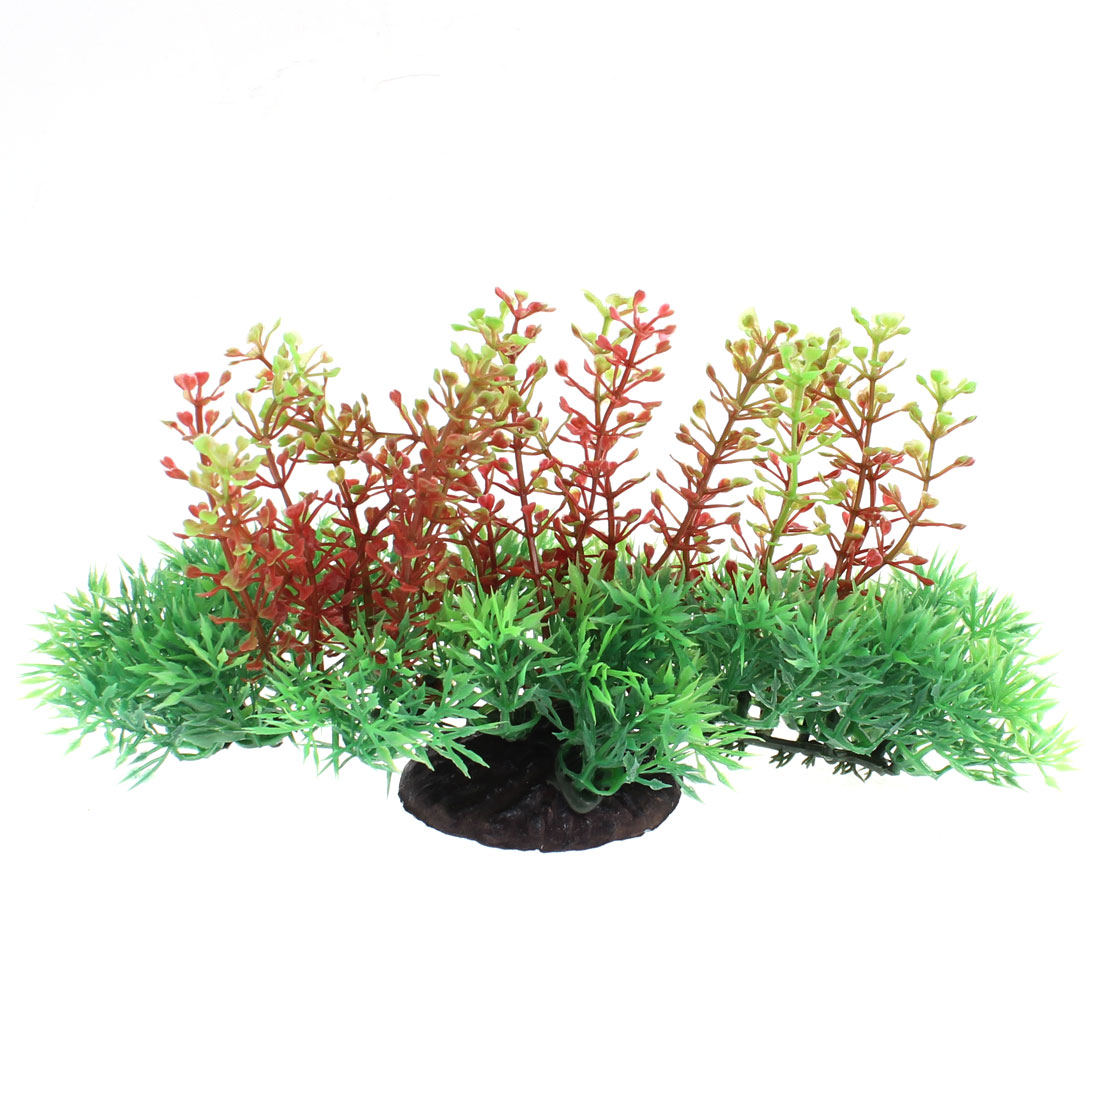 Aquarium Fish Tank Plastic Artificial Underwater Plant Tree Ornament Red Green